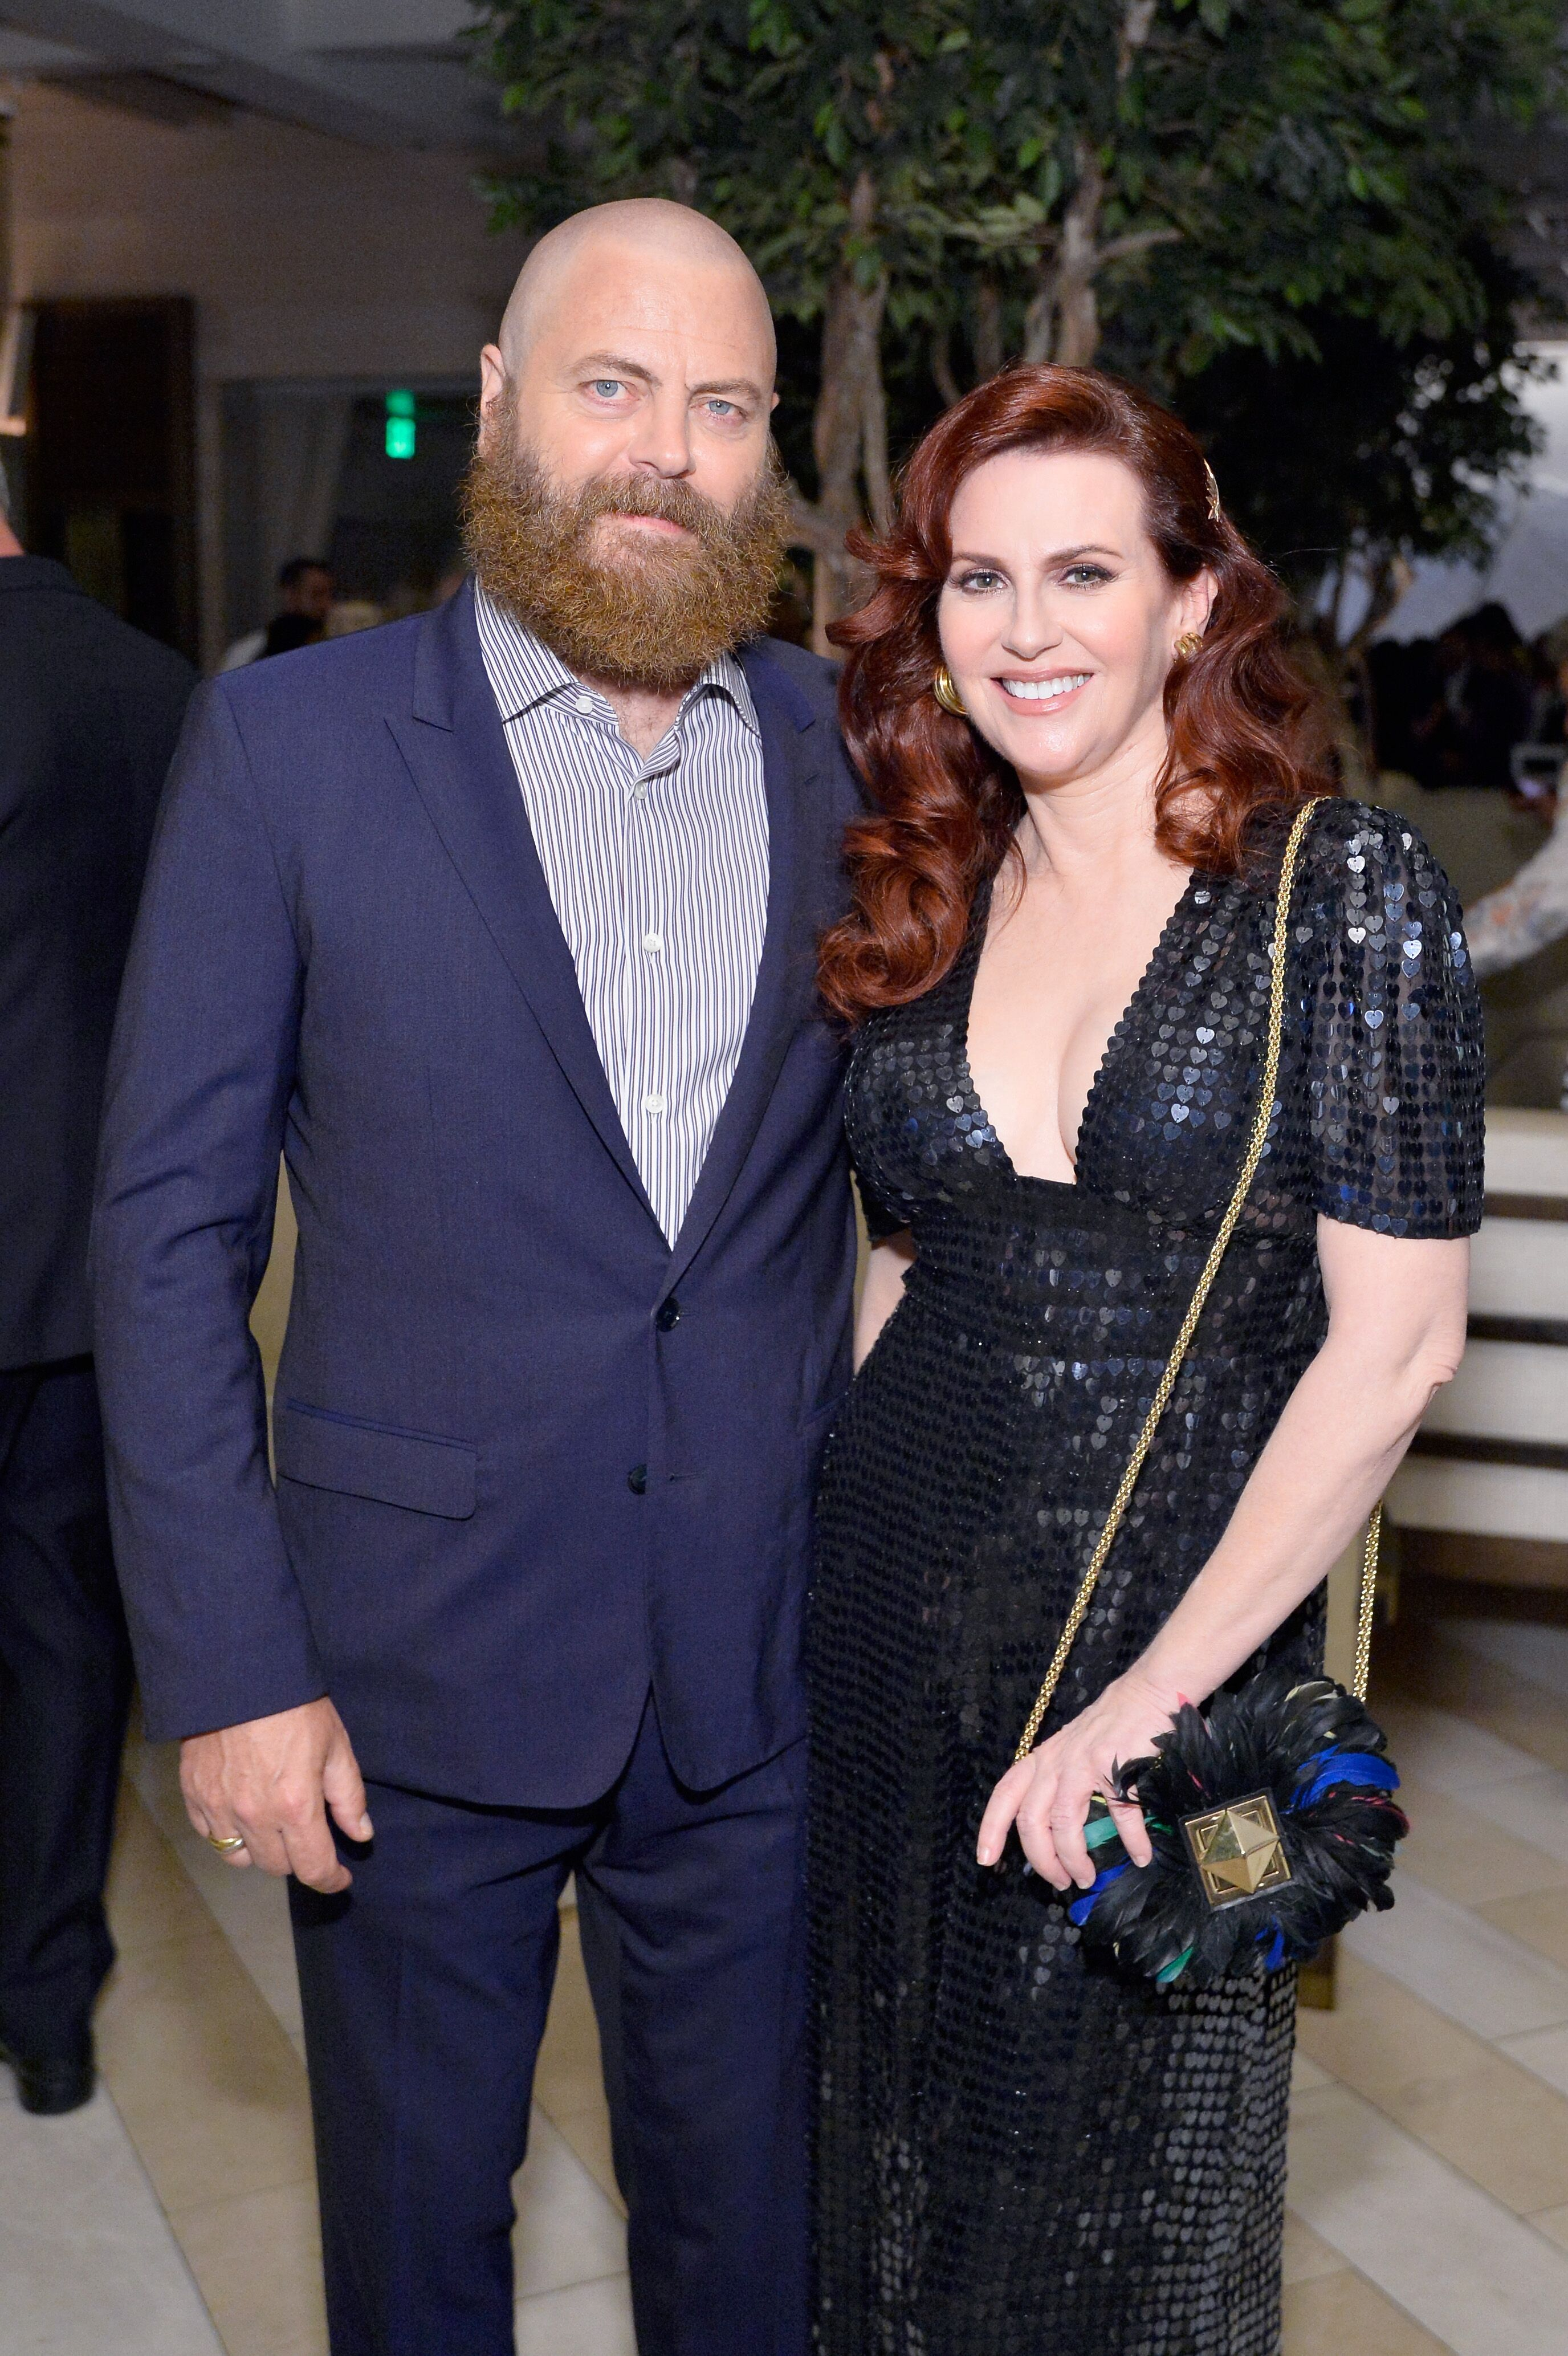 Megan Mullally and Nick Offerman at the Hollywood Reporter & SAG-AFTRA 2nd annual Emmy Nominees Night in 2018 | Source: Getty Images